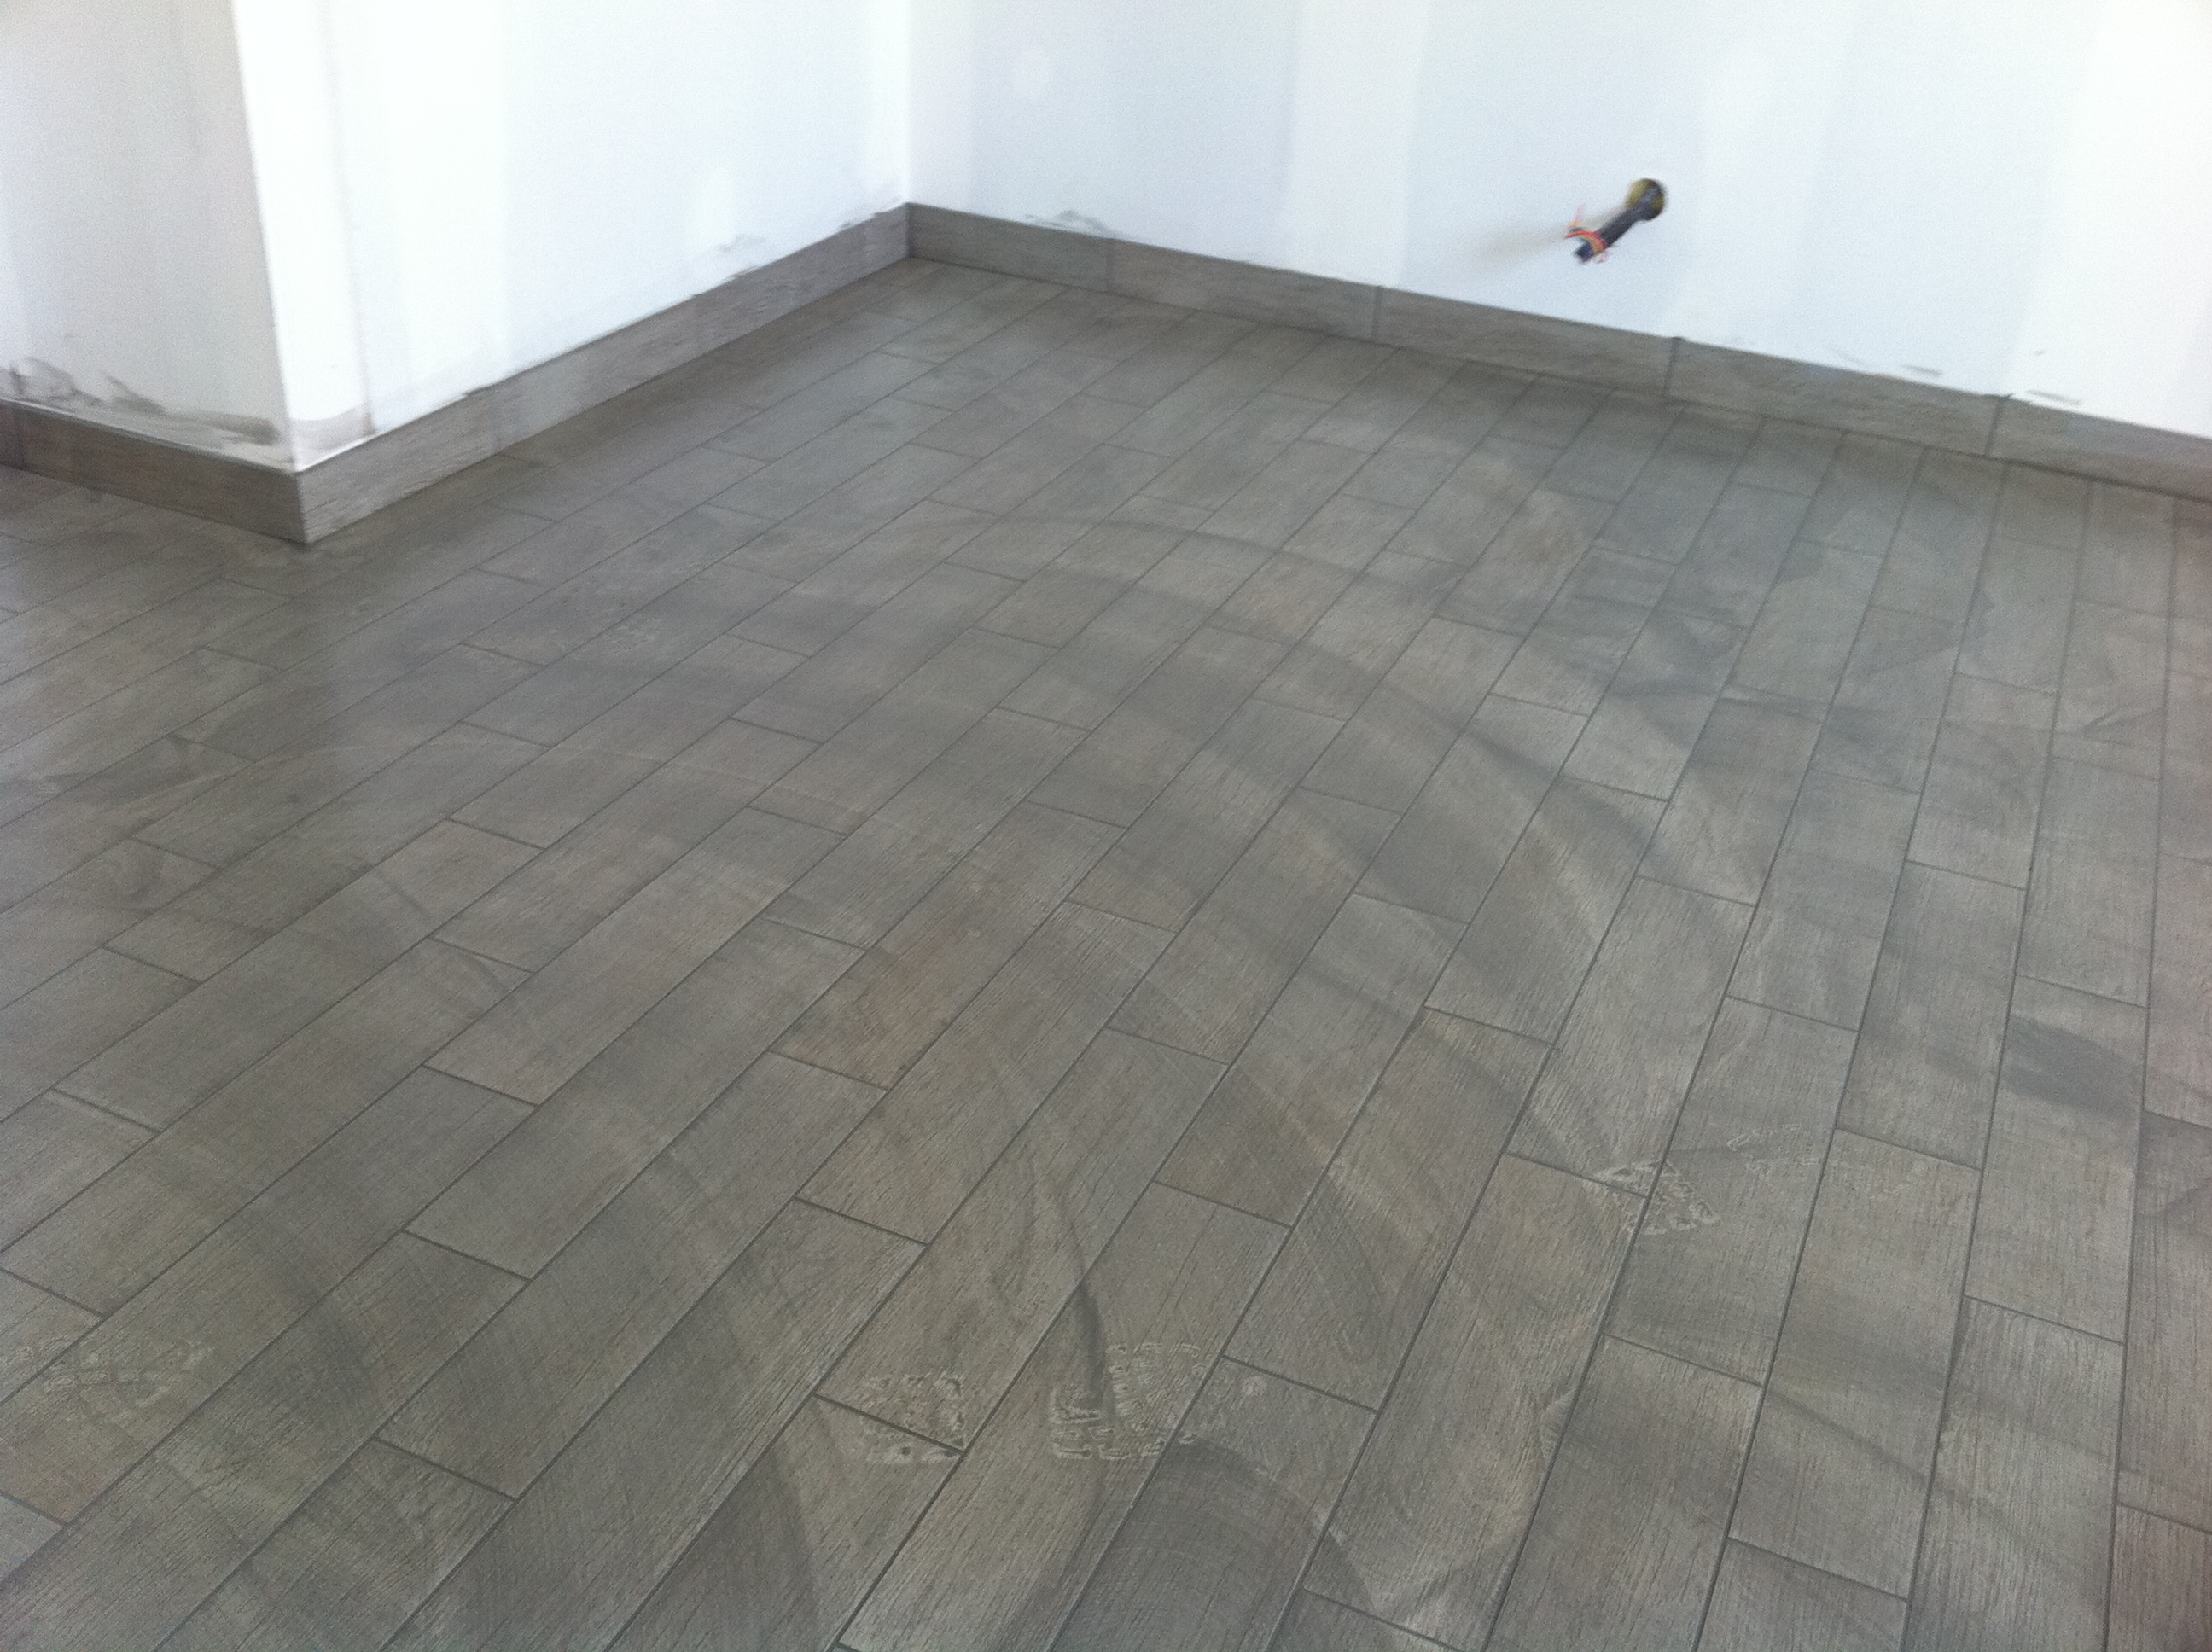 Carrelage imitation parquet pas cher for Pose carrelage sol imitation parquet